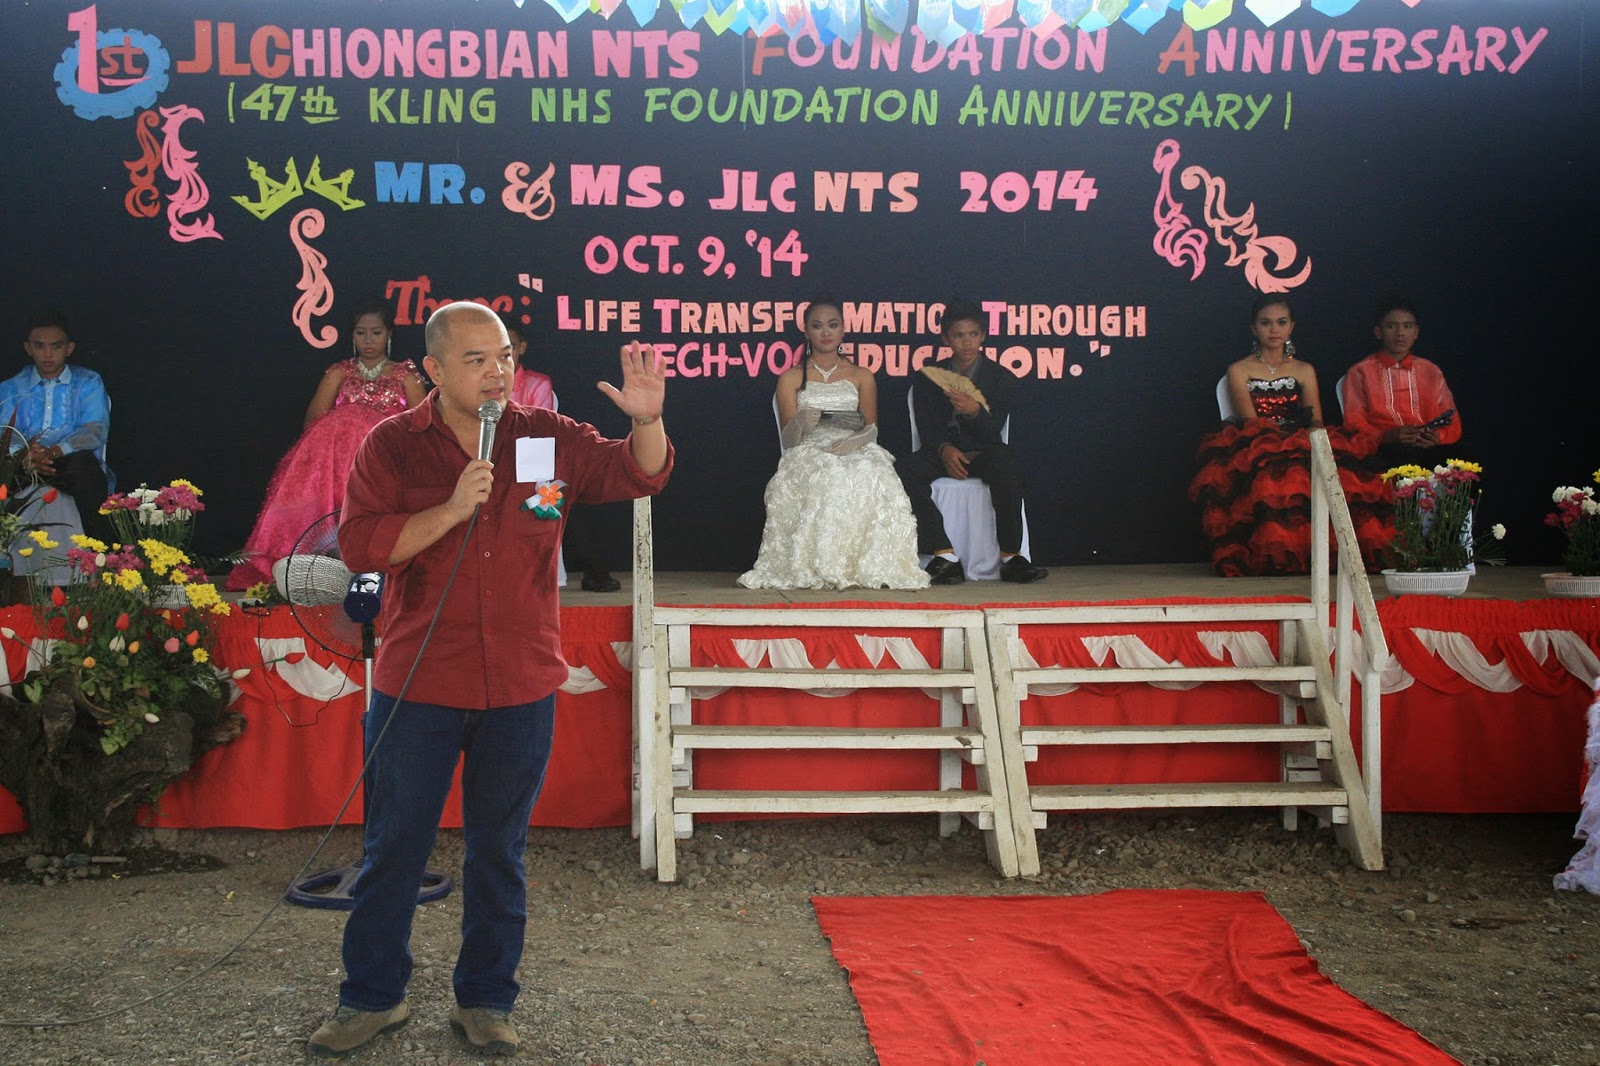 sarangani today james l chiongbian nts is top tech voc school in steve chiongbian solon lauds james l chiongbian national trade school nts formerly kling national high school for being the number one technical